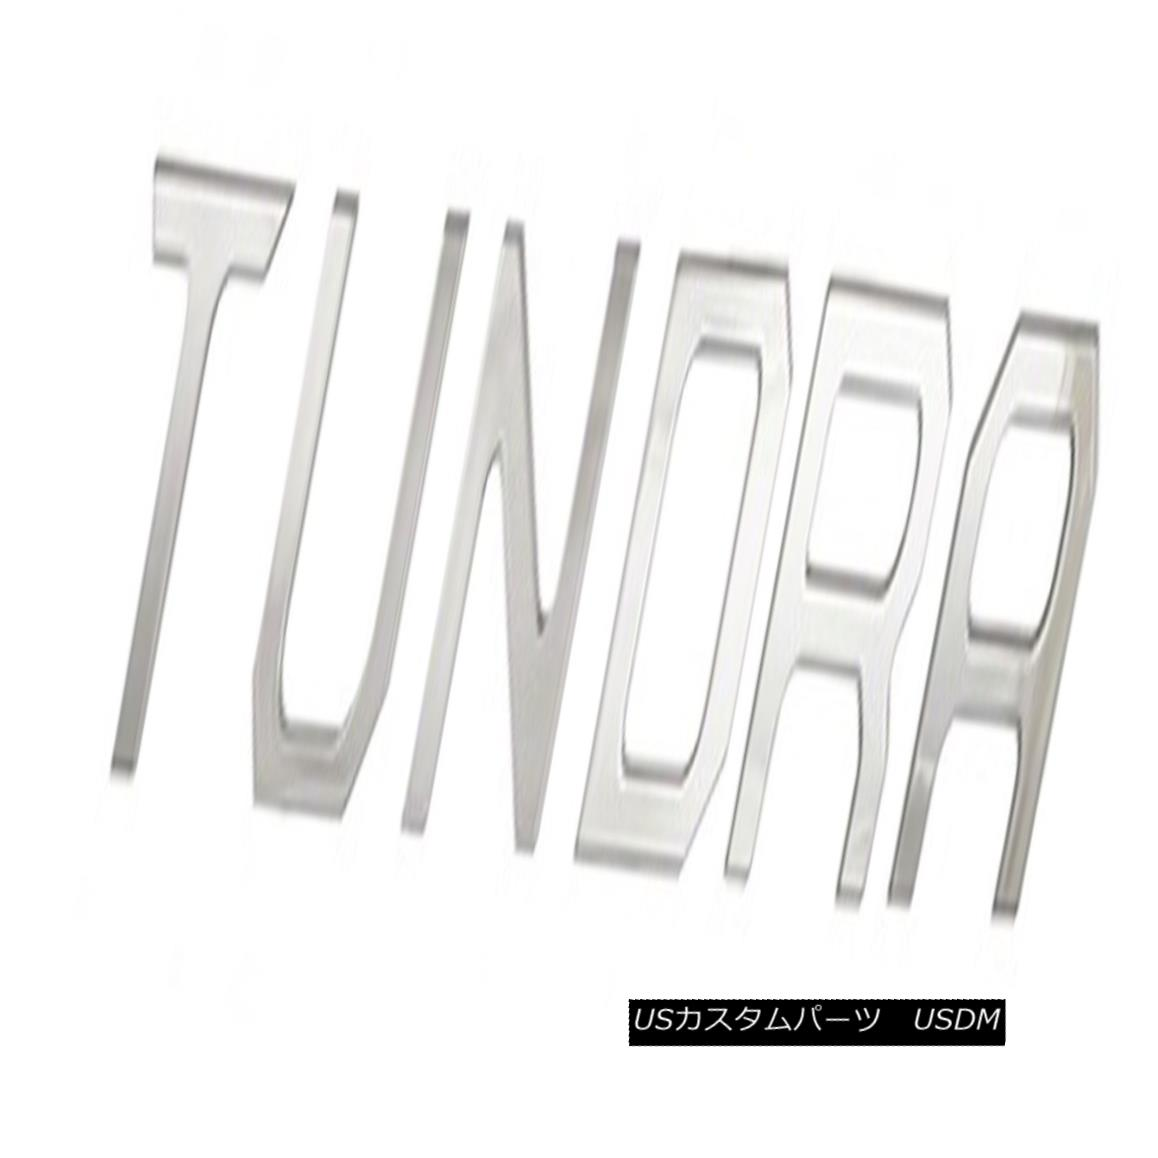 USグリル For 14-15 Tundra Accent Letters T-U-N-D-R-A CCITUNDRA01S T-U-N-D-R-A CCITUNDRA01S